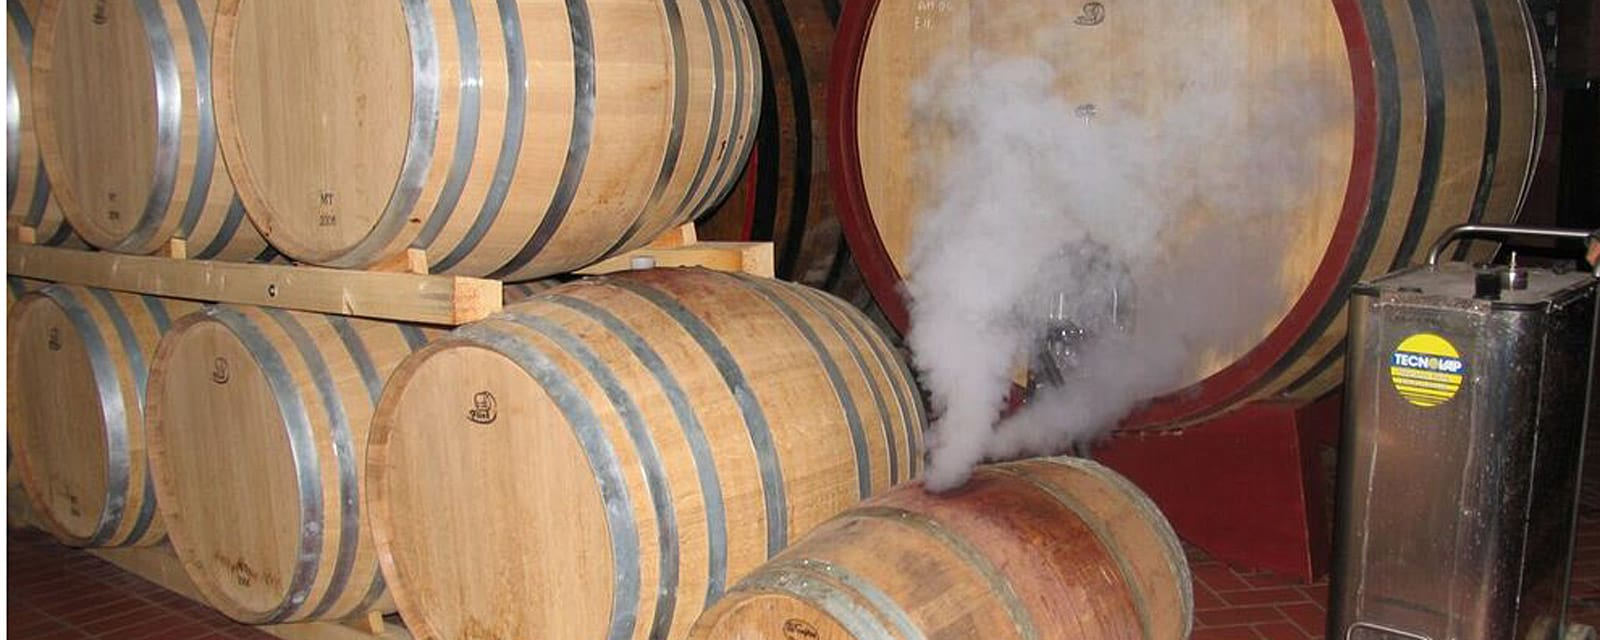 "natural disinfectant properties of steam"" alt=""steam has natural disinfectant properties, when used in wine barrel cleaning, it substantially reduces infection risk"